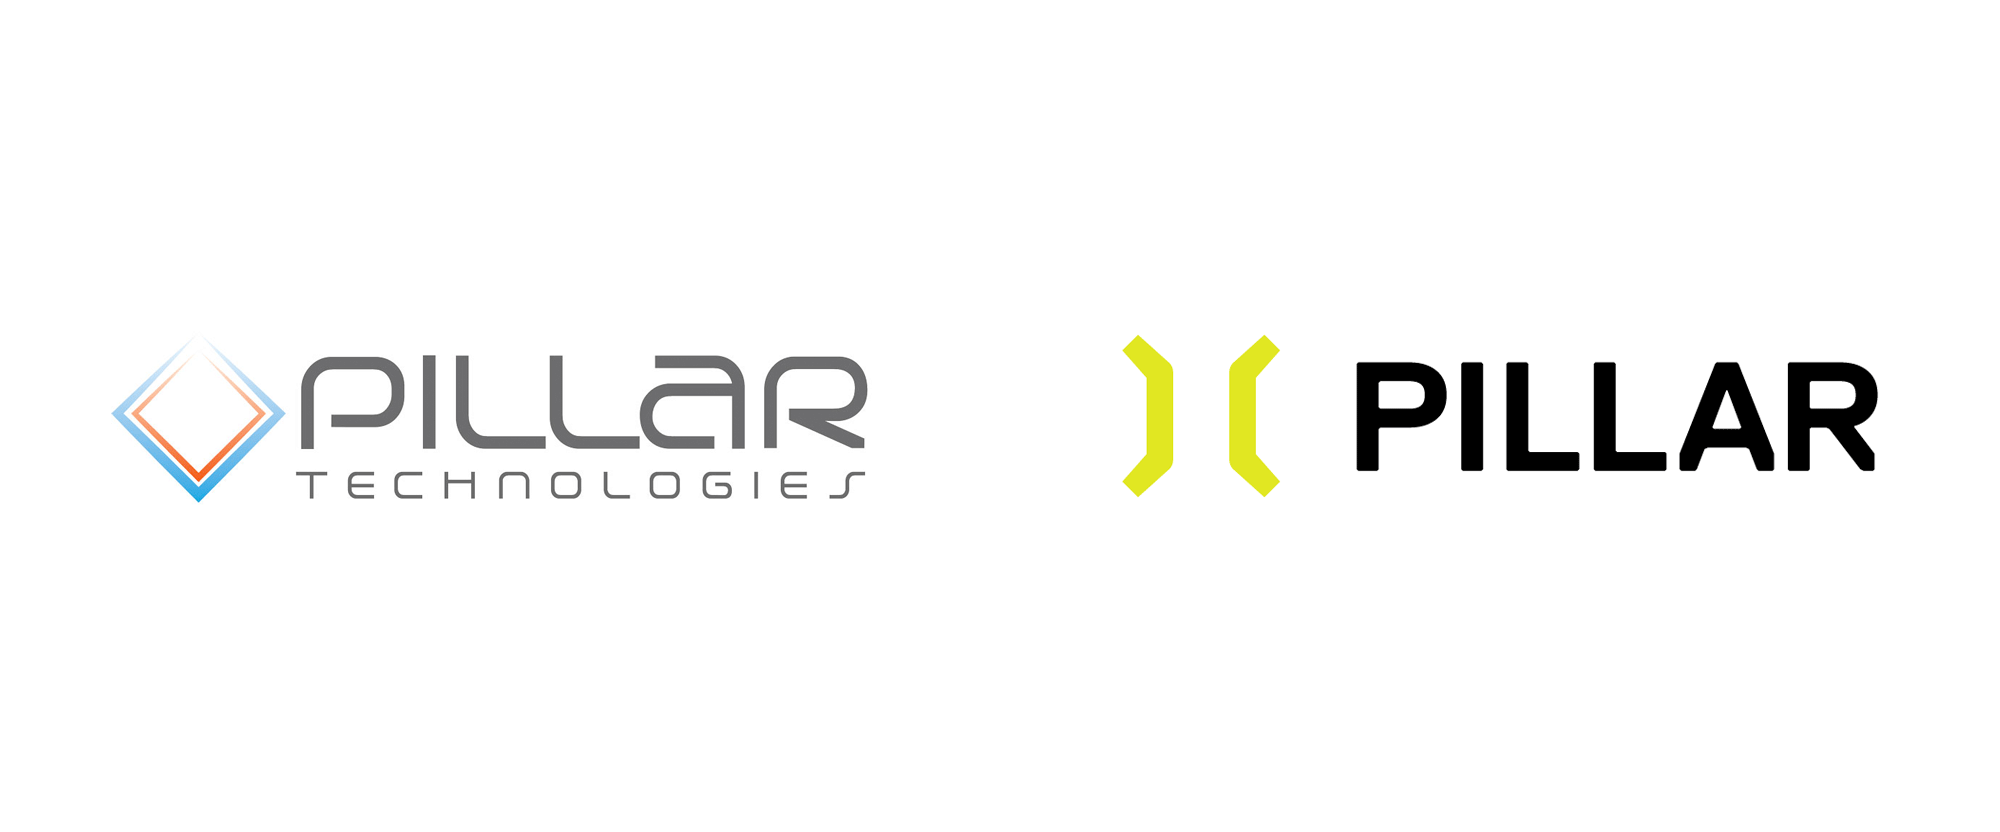 New Logo and Identity for Pillar Technologies by Siren